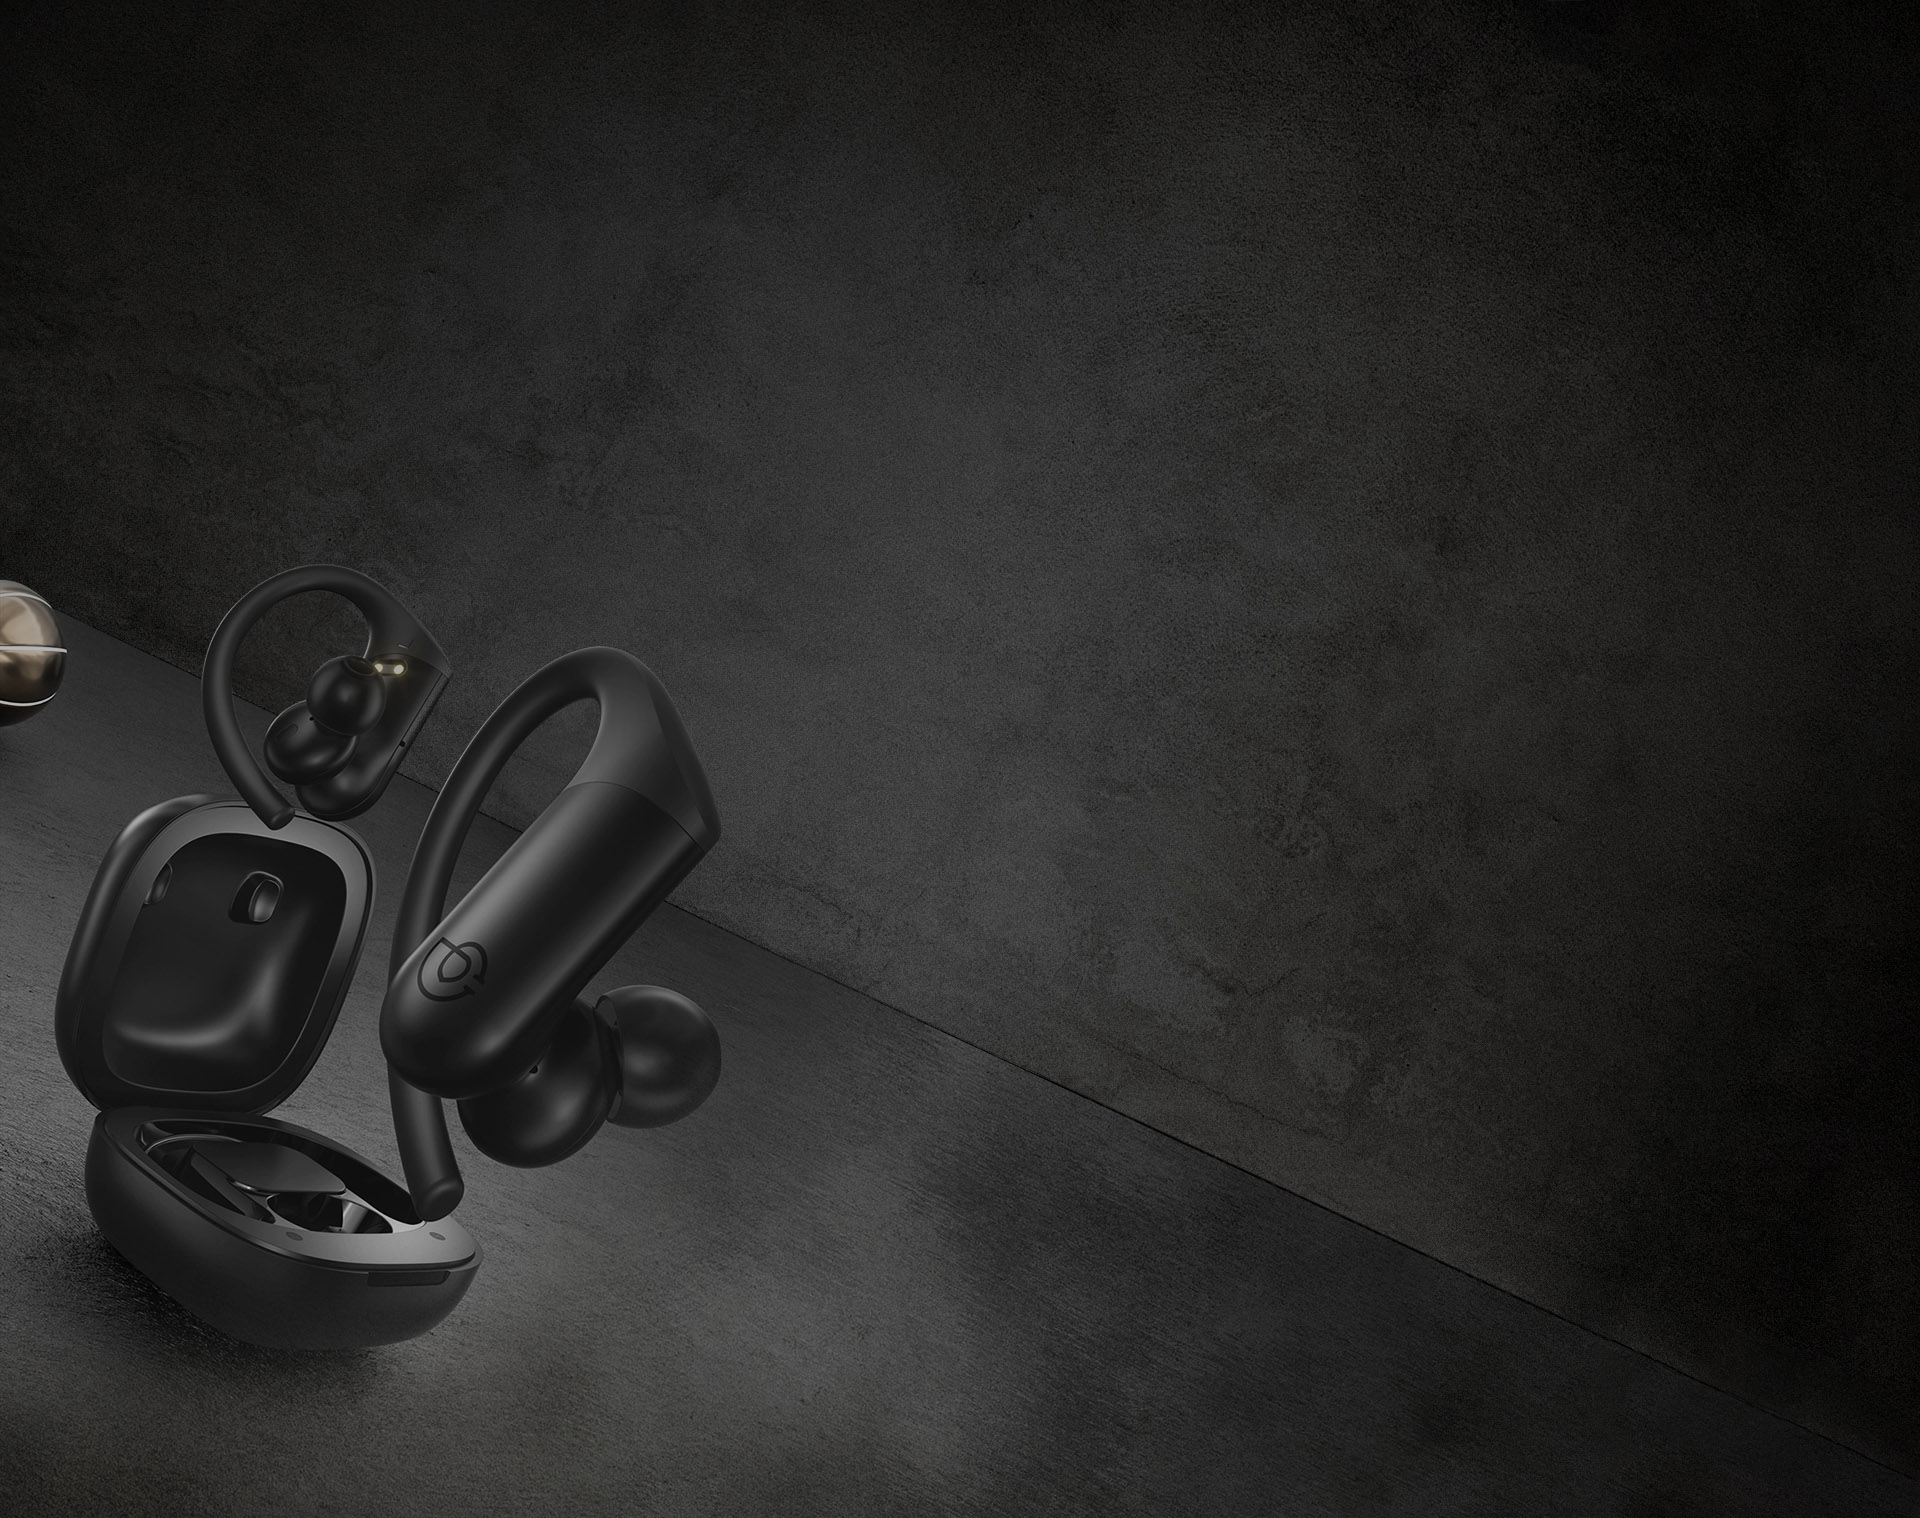 Haylou T17 True wireless earphones with active noise cancellation